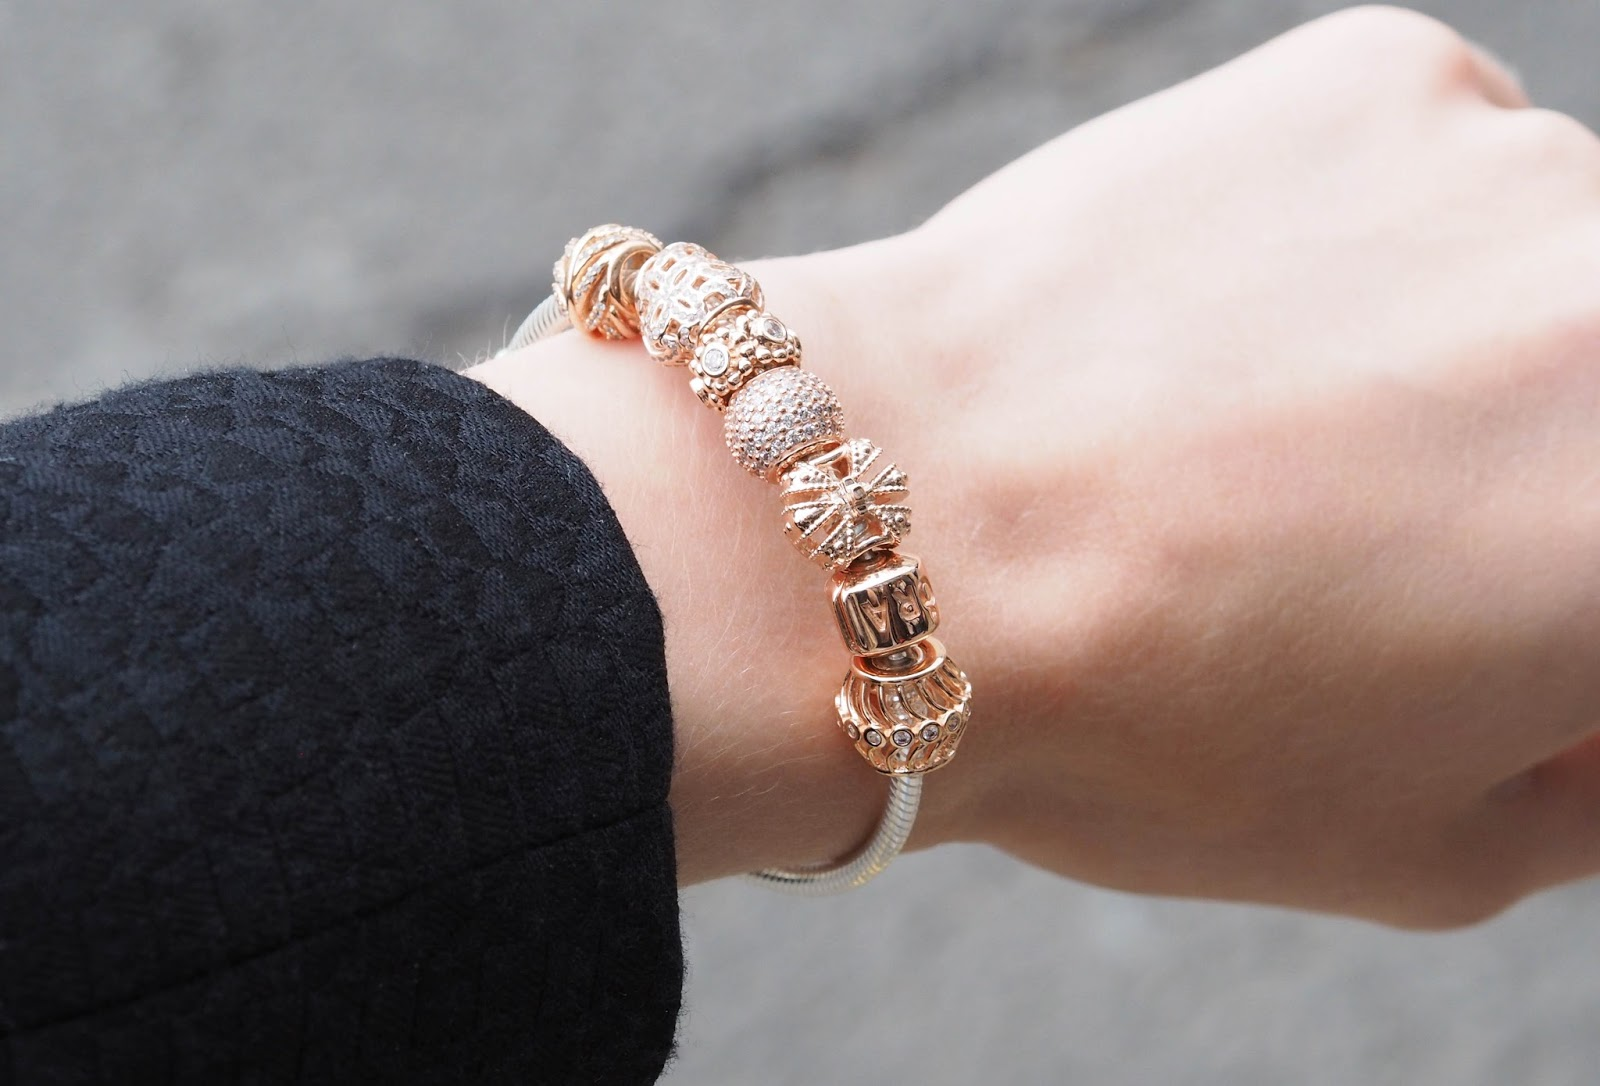 Czech Pandora Rose Gold Bracelet Ideas E0c31 47278